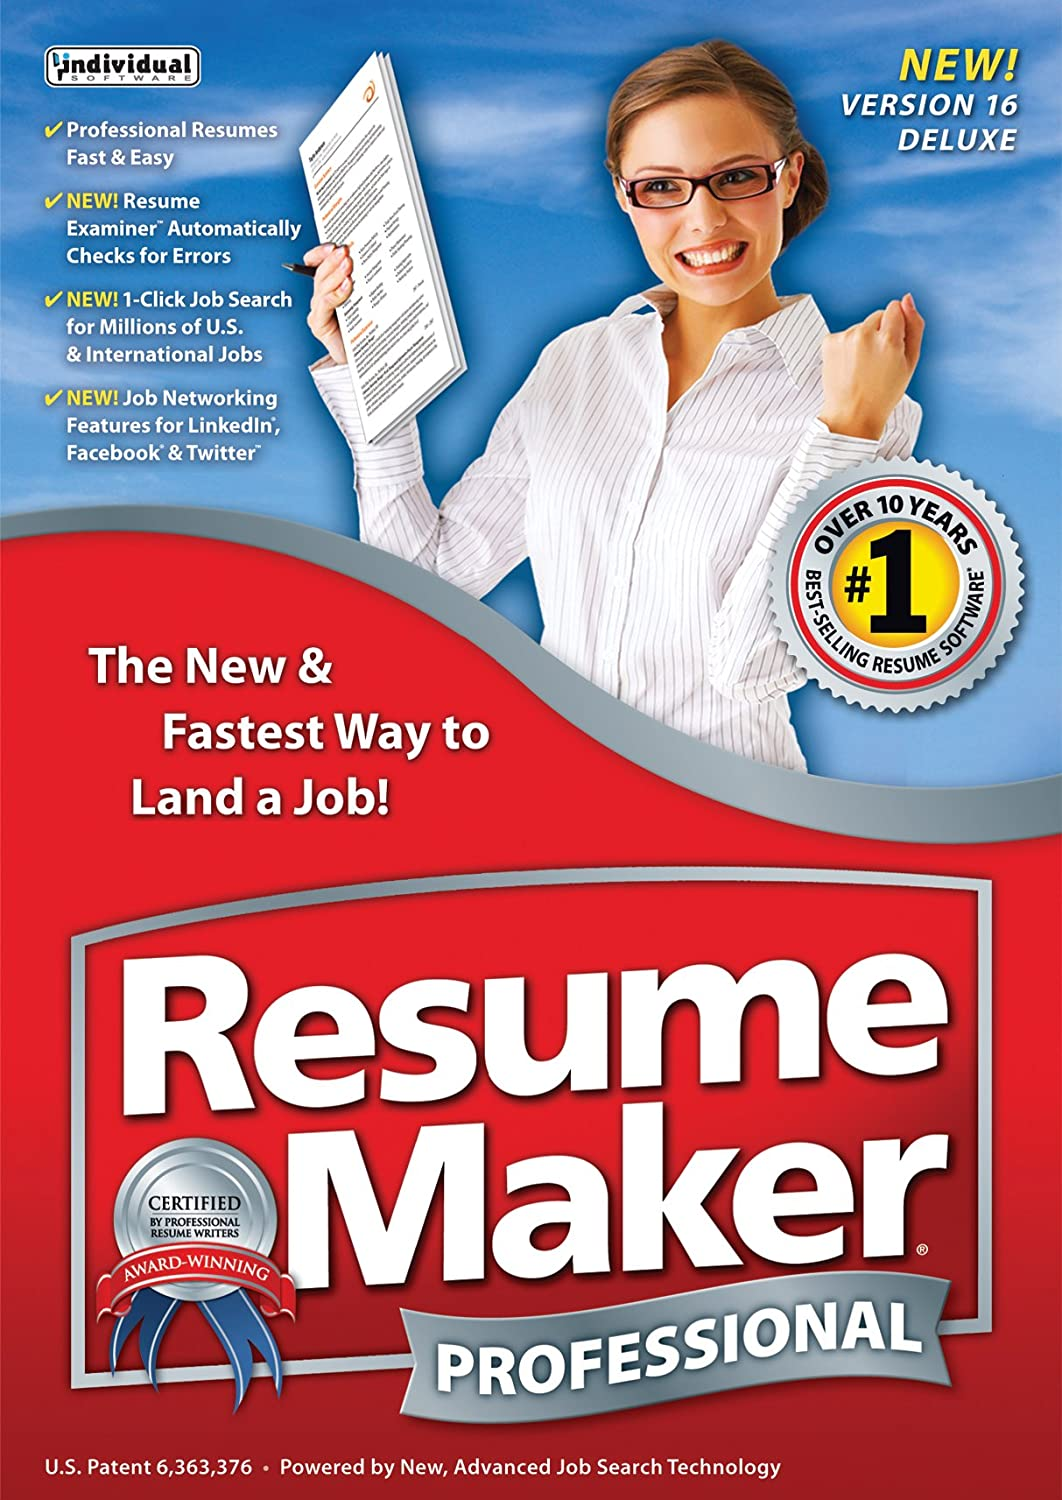 amazoncom resumemaker professional deluxe 16 download software